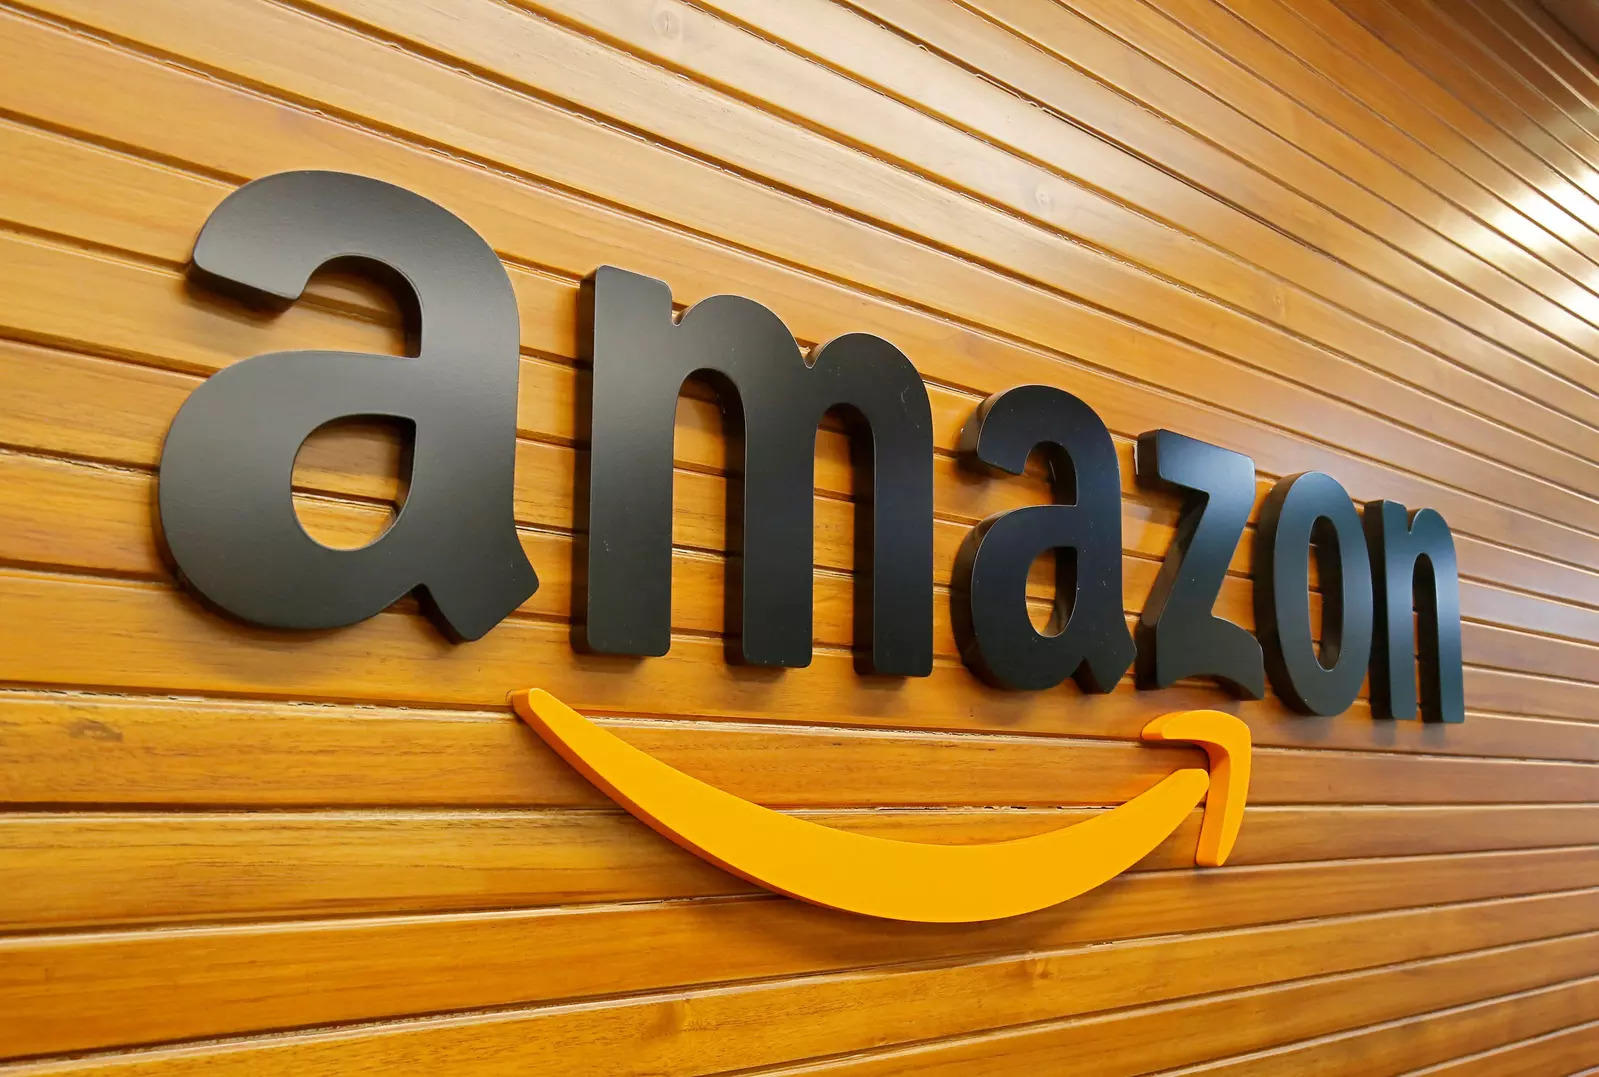 E-commerce will play important role in Atmanirbhar Bharat vision: Amazon India head